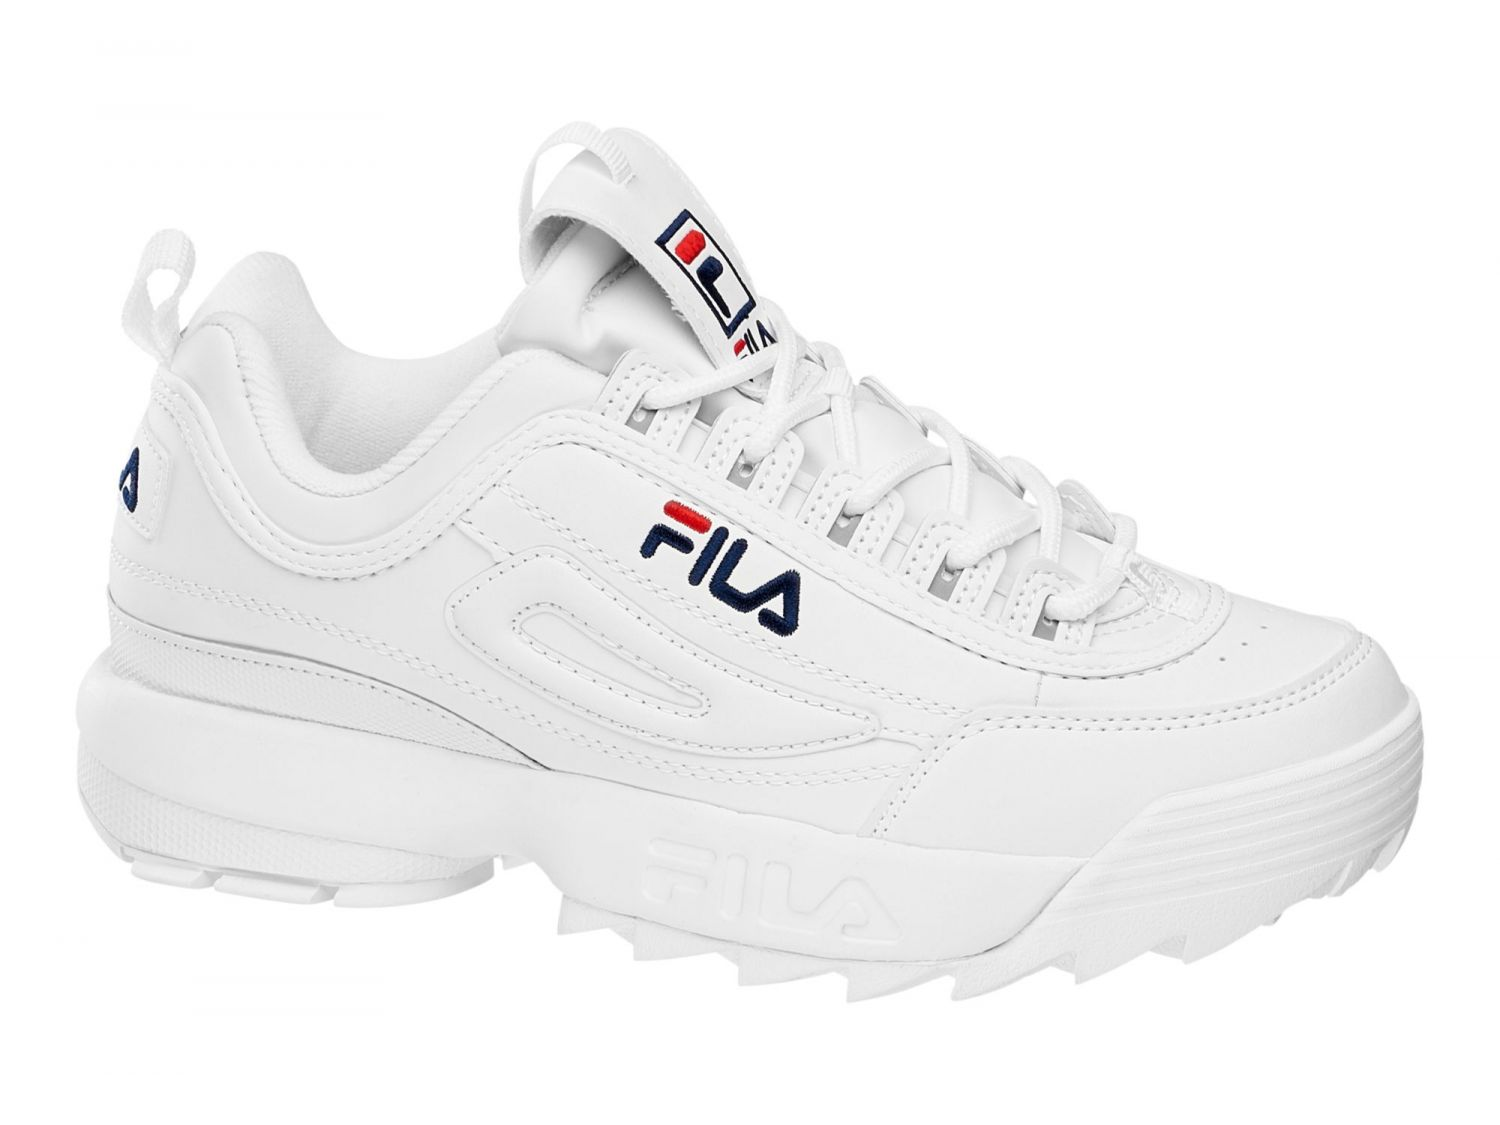 fila sneaker disruptor low wmn 00014201479839. Black Bedroom Furniture Sets. Home Design Ideas